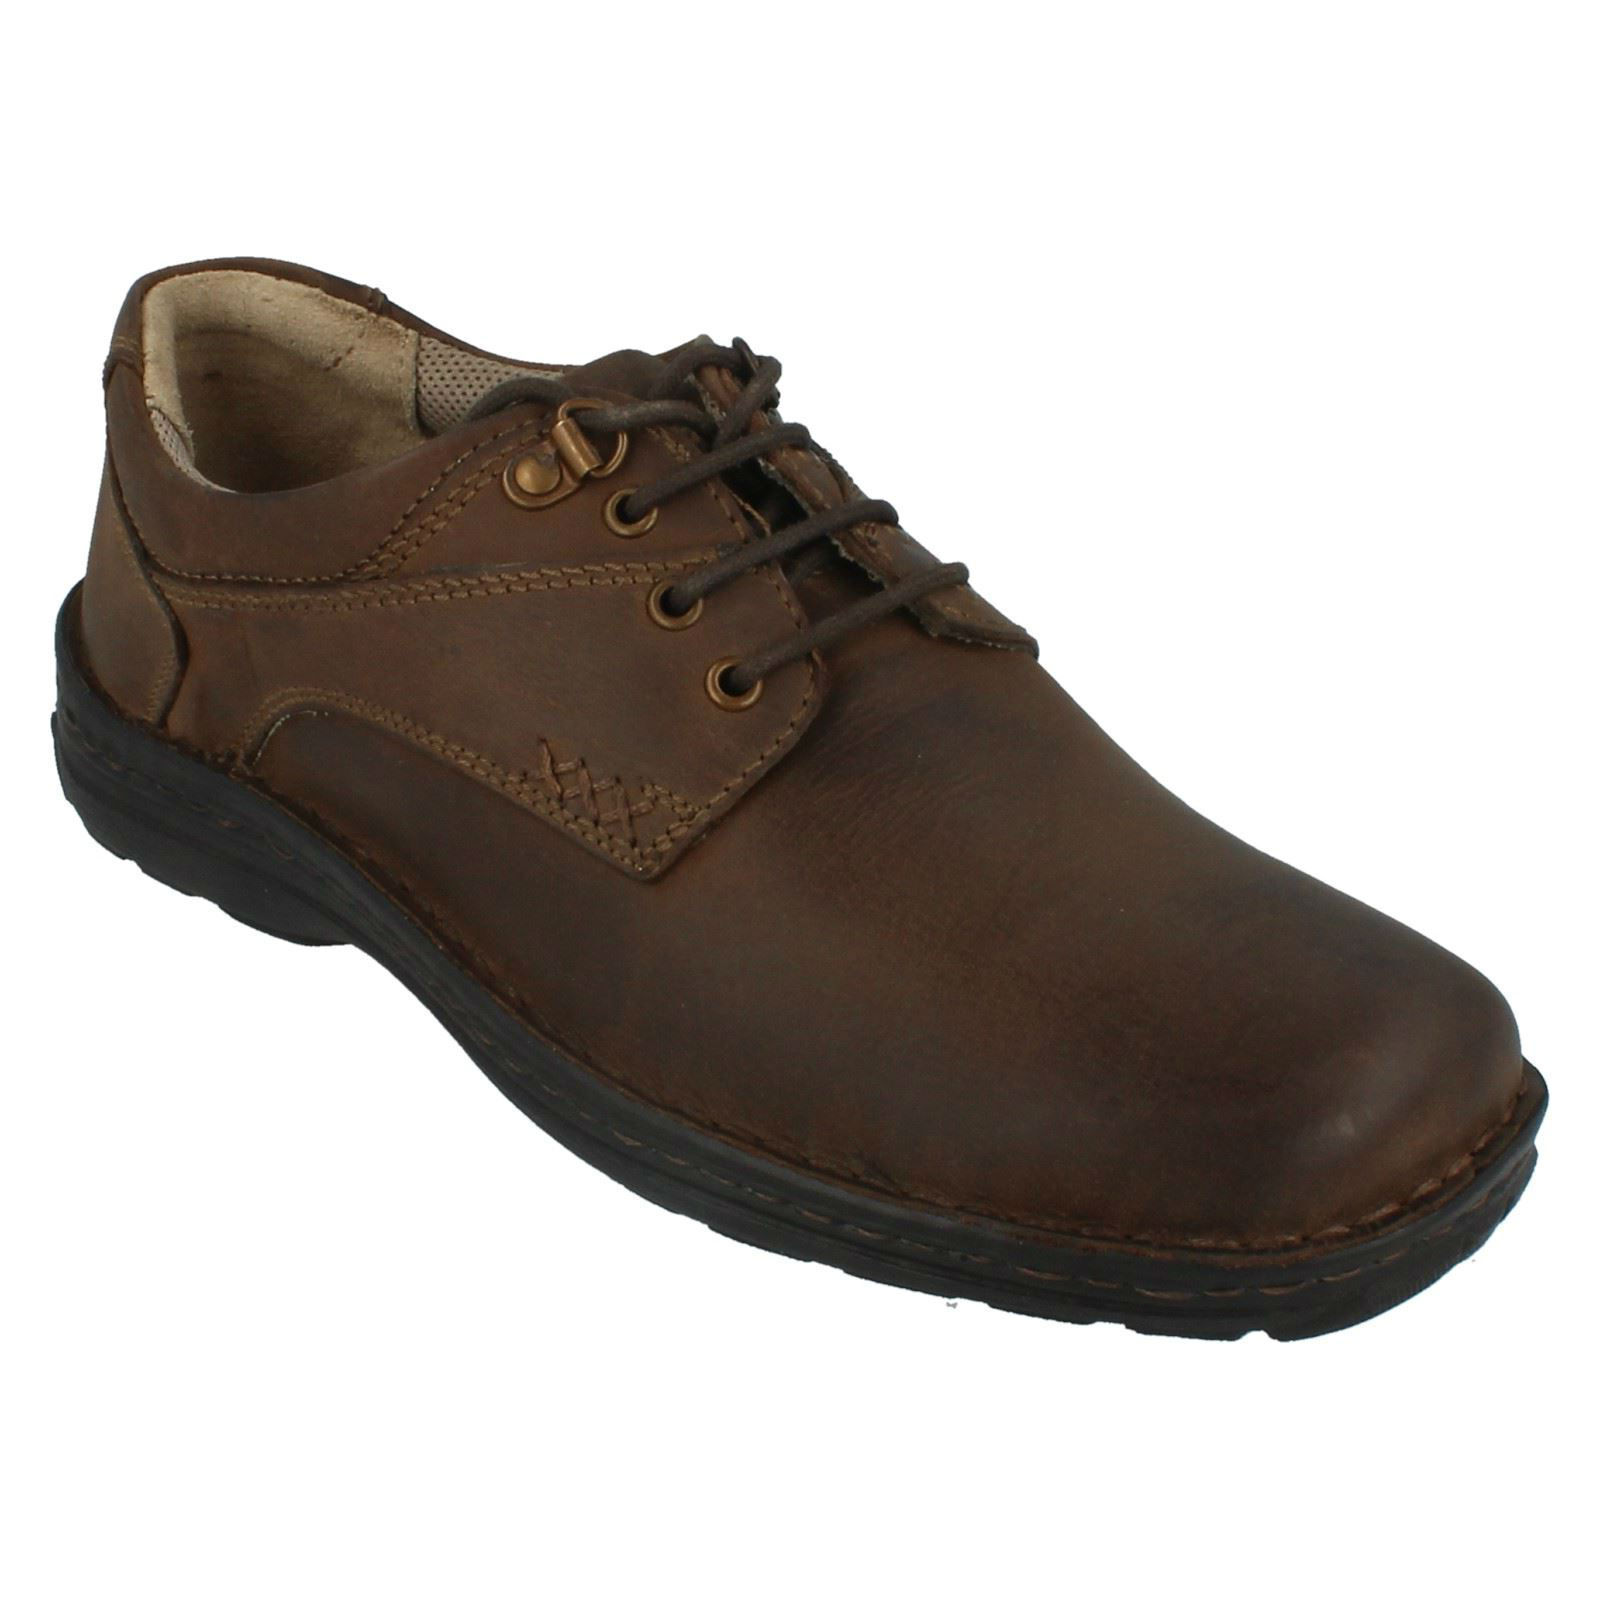 H104687 HUSH PUPPIES GEOGRAPHY LACE UP  LEATHER Herren BROWN LEATHER  CASUAL SMART Schuhe 183aa5